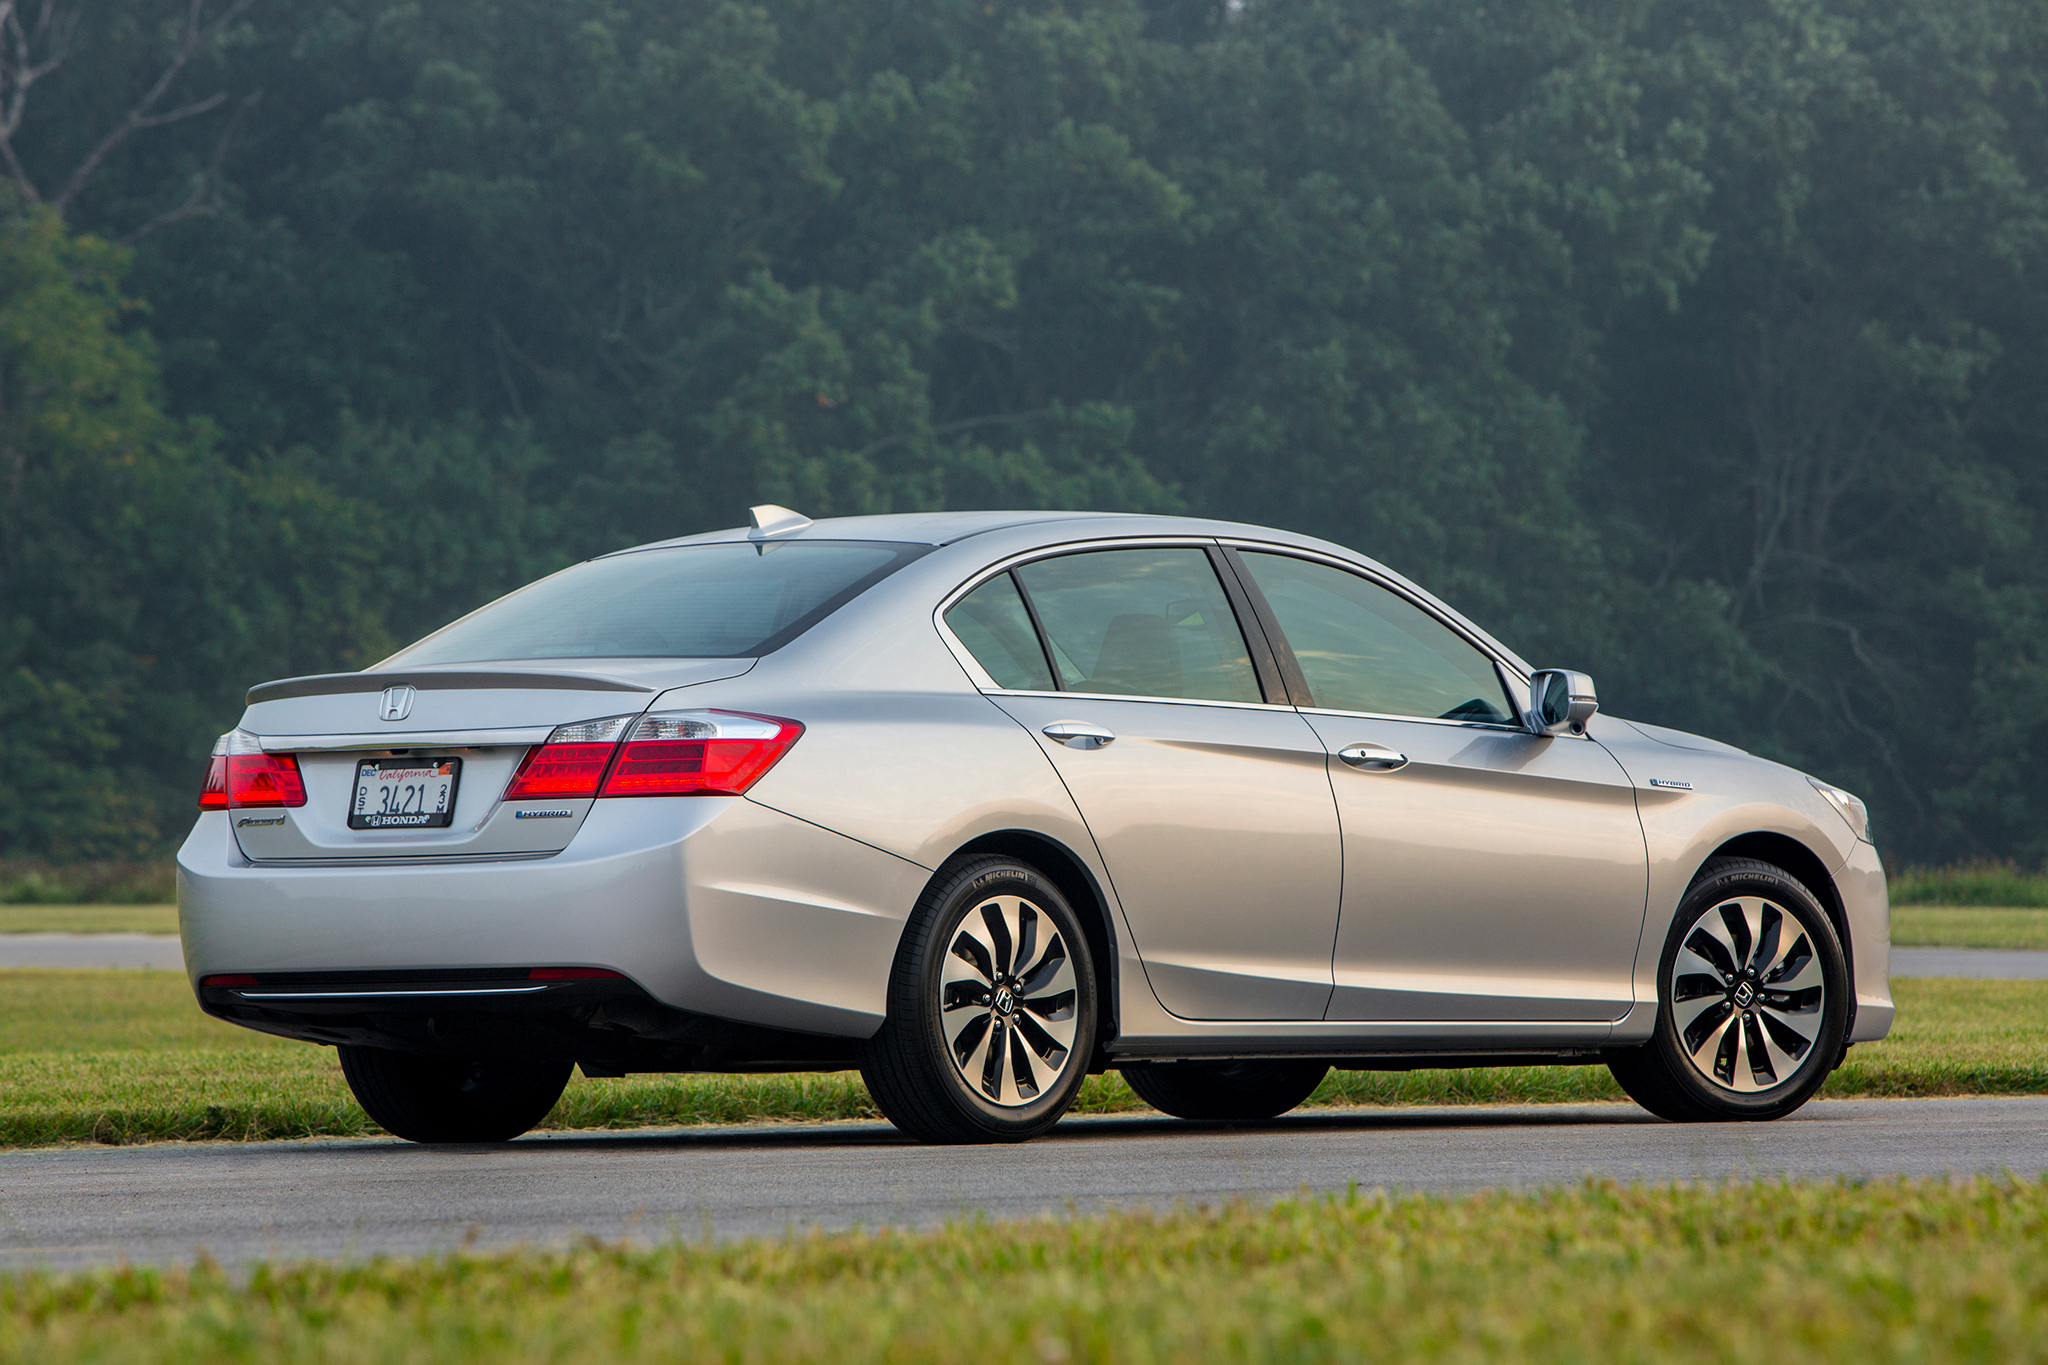 Exports of U.S.-Made Hondas Outnumber Imports from Japan